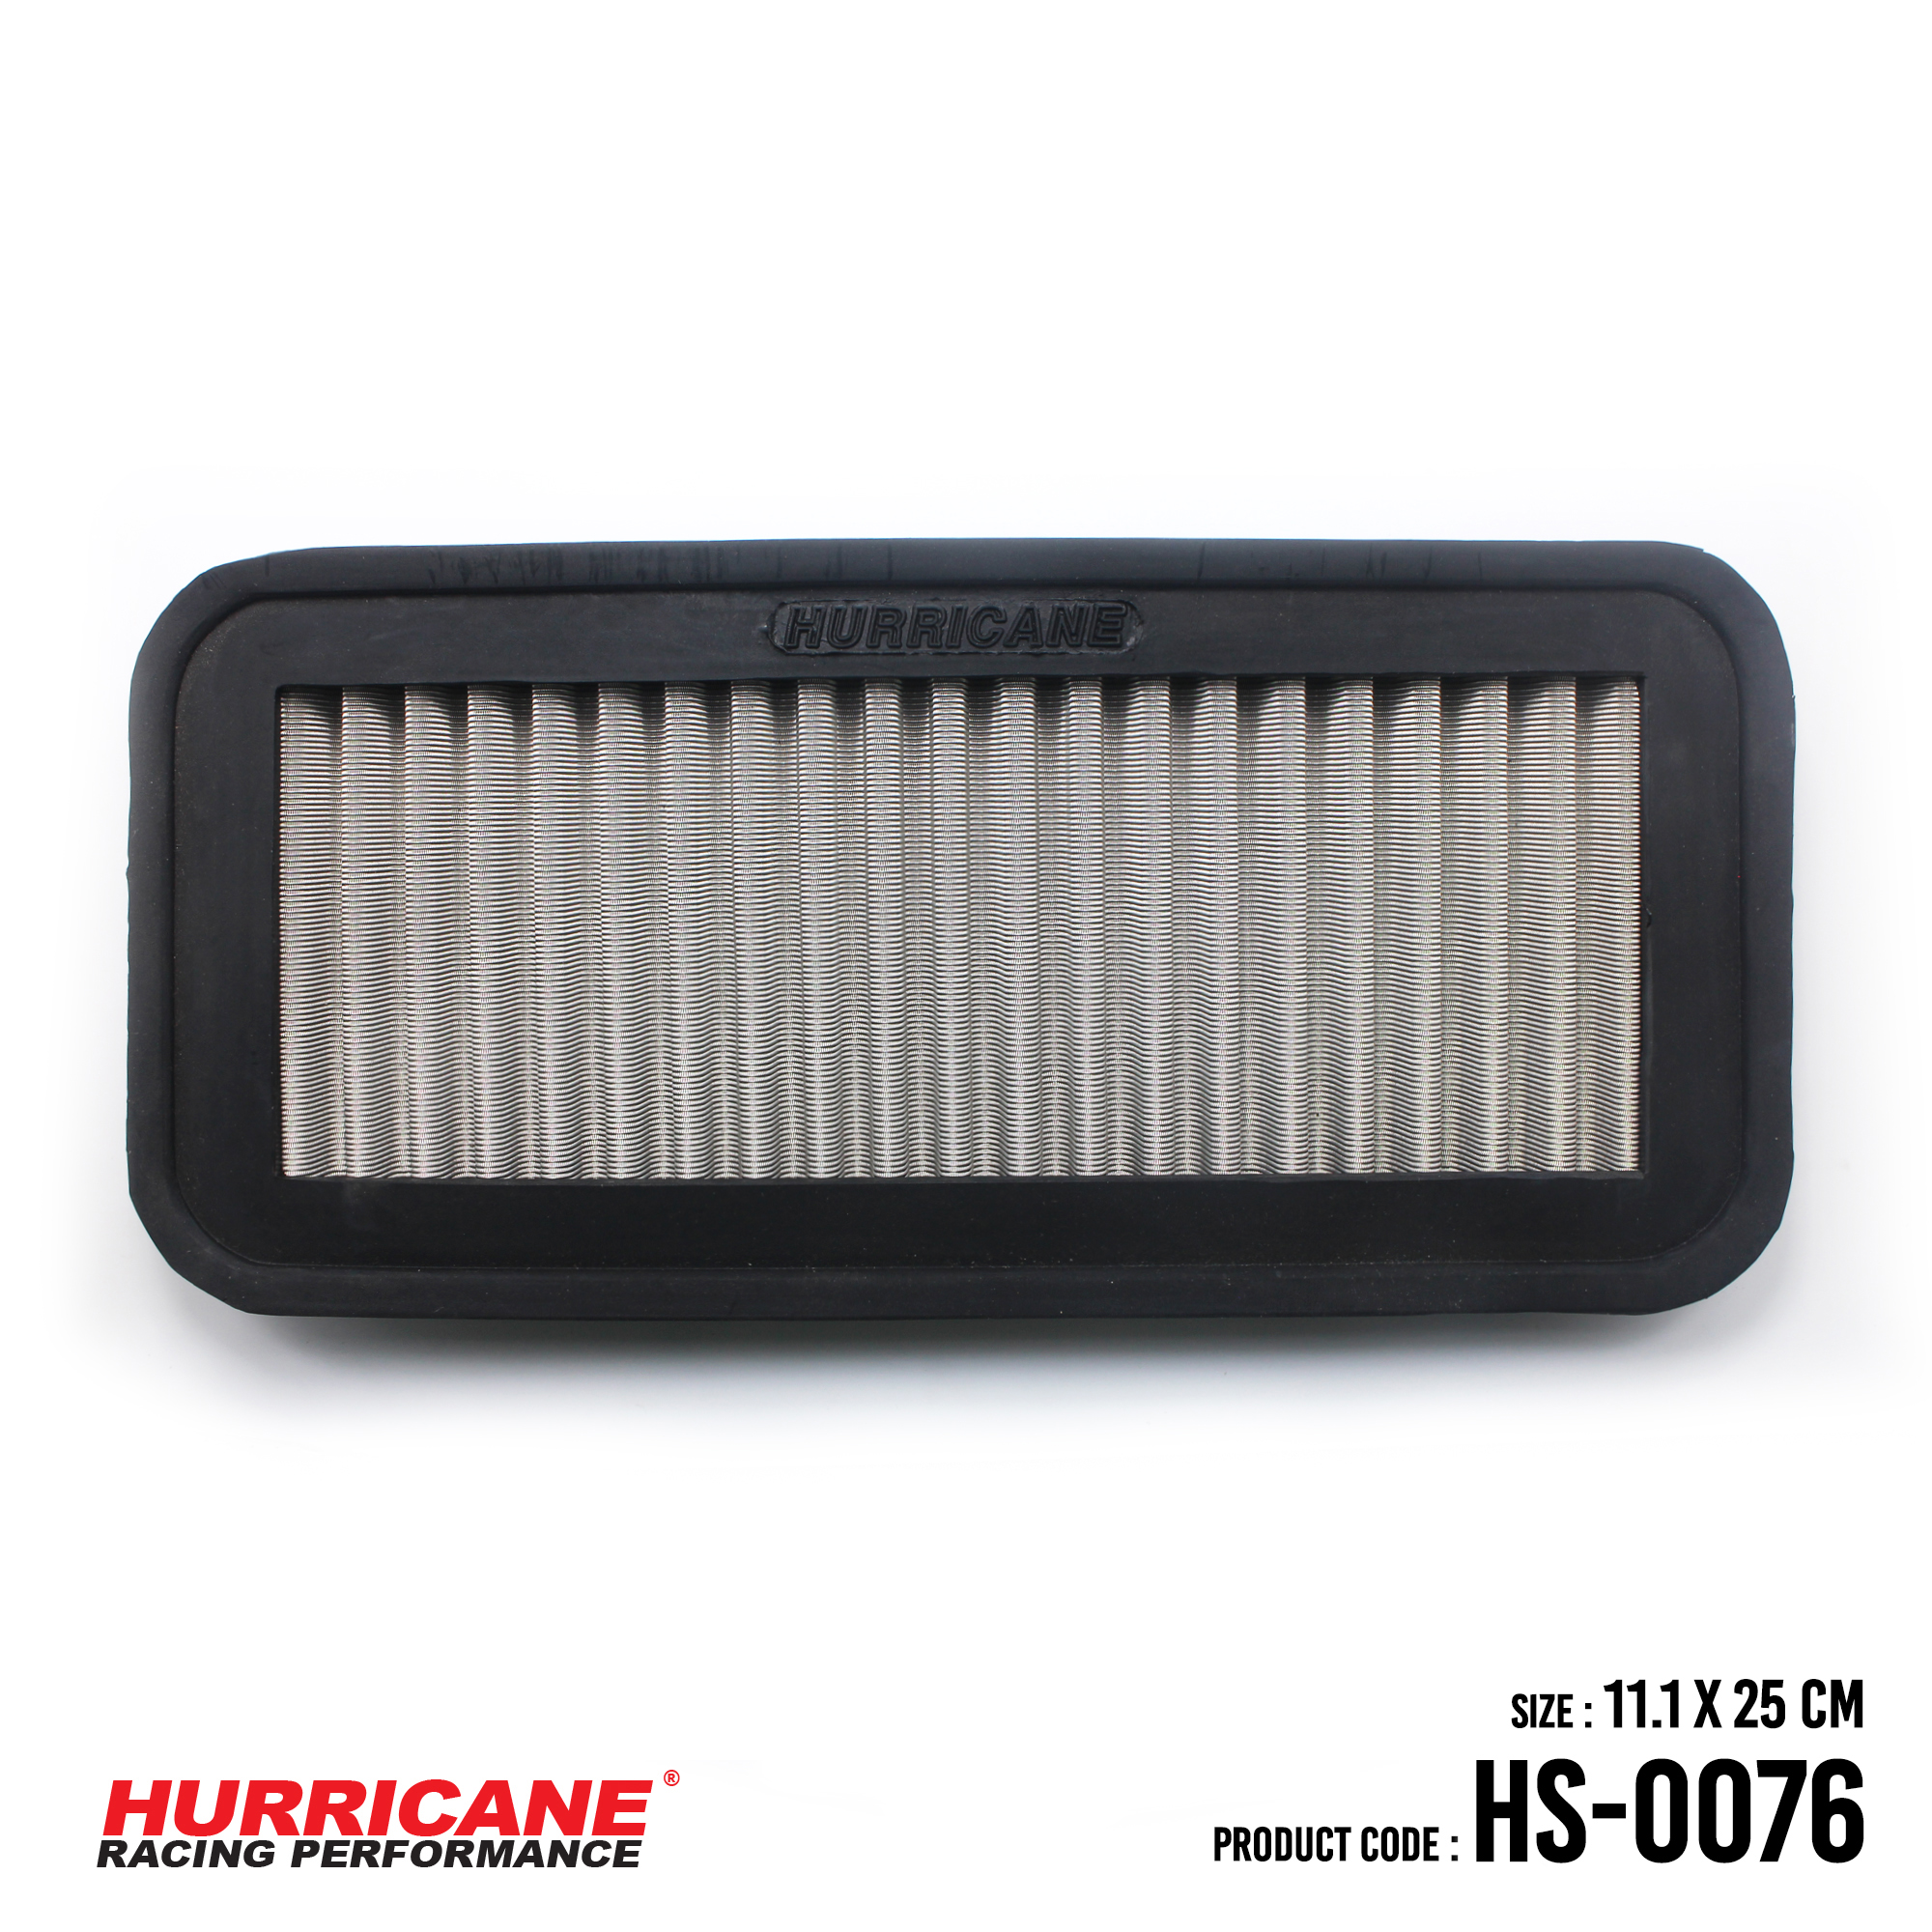 HURRICANE STAINLESS STEEL AIR FILTER FOR HS-0076 Kia